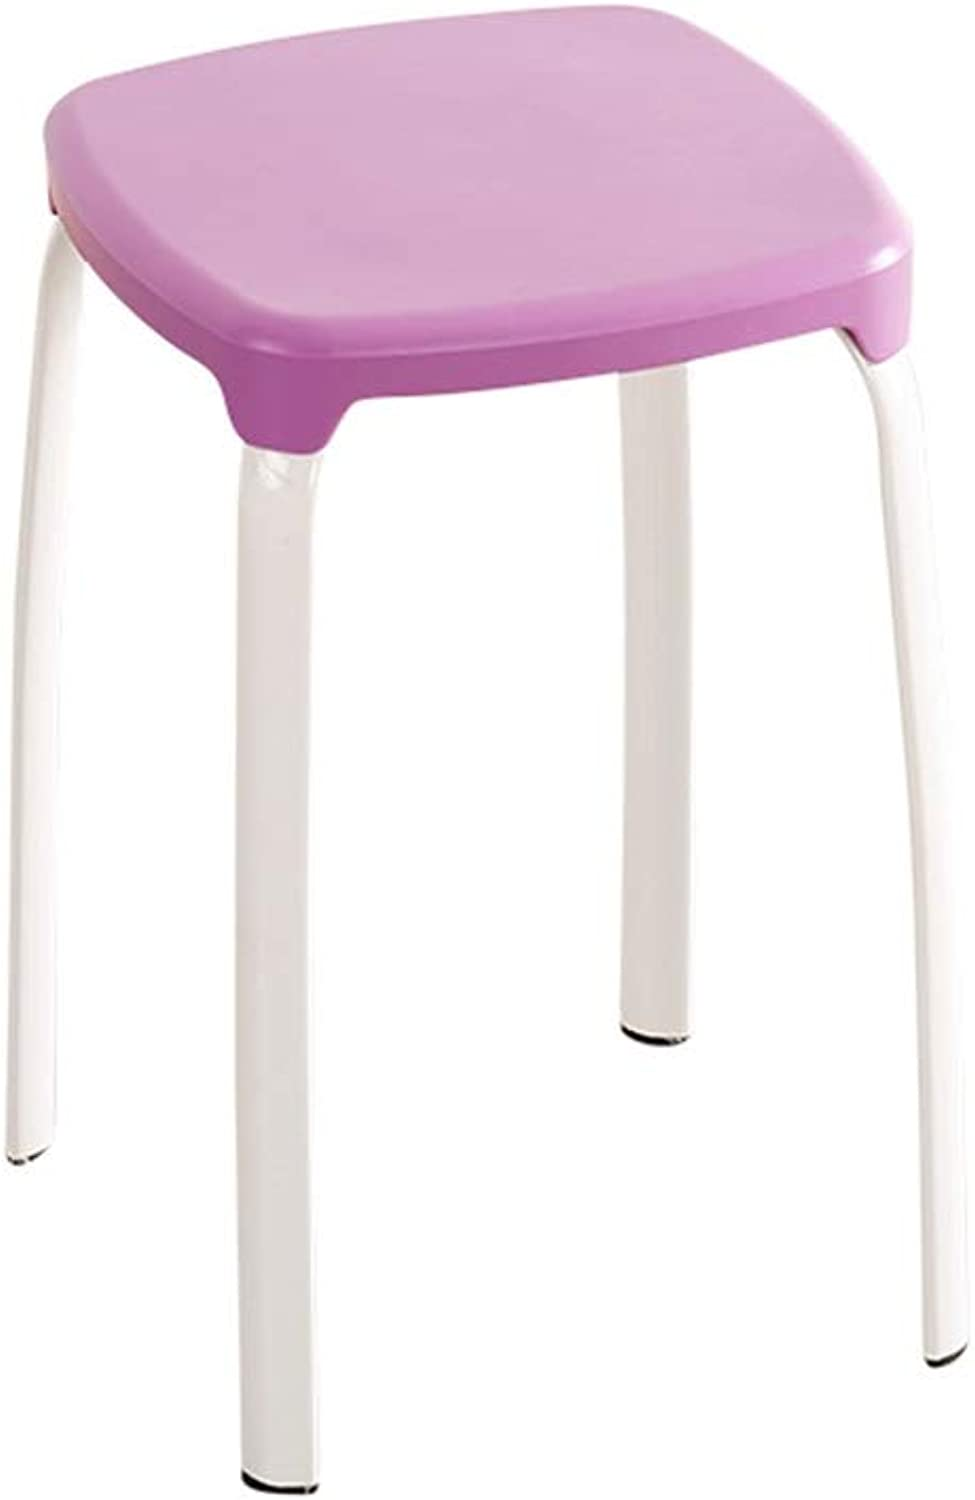 Dining Stool, Shop Stool Supermarket Stool Rest Stool Stackable Plastic Stool Sturdy Non-Slip High Stool Home Stool (color   F)